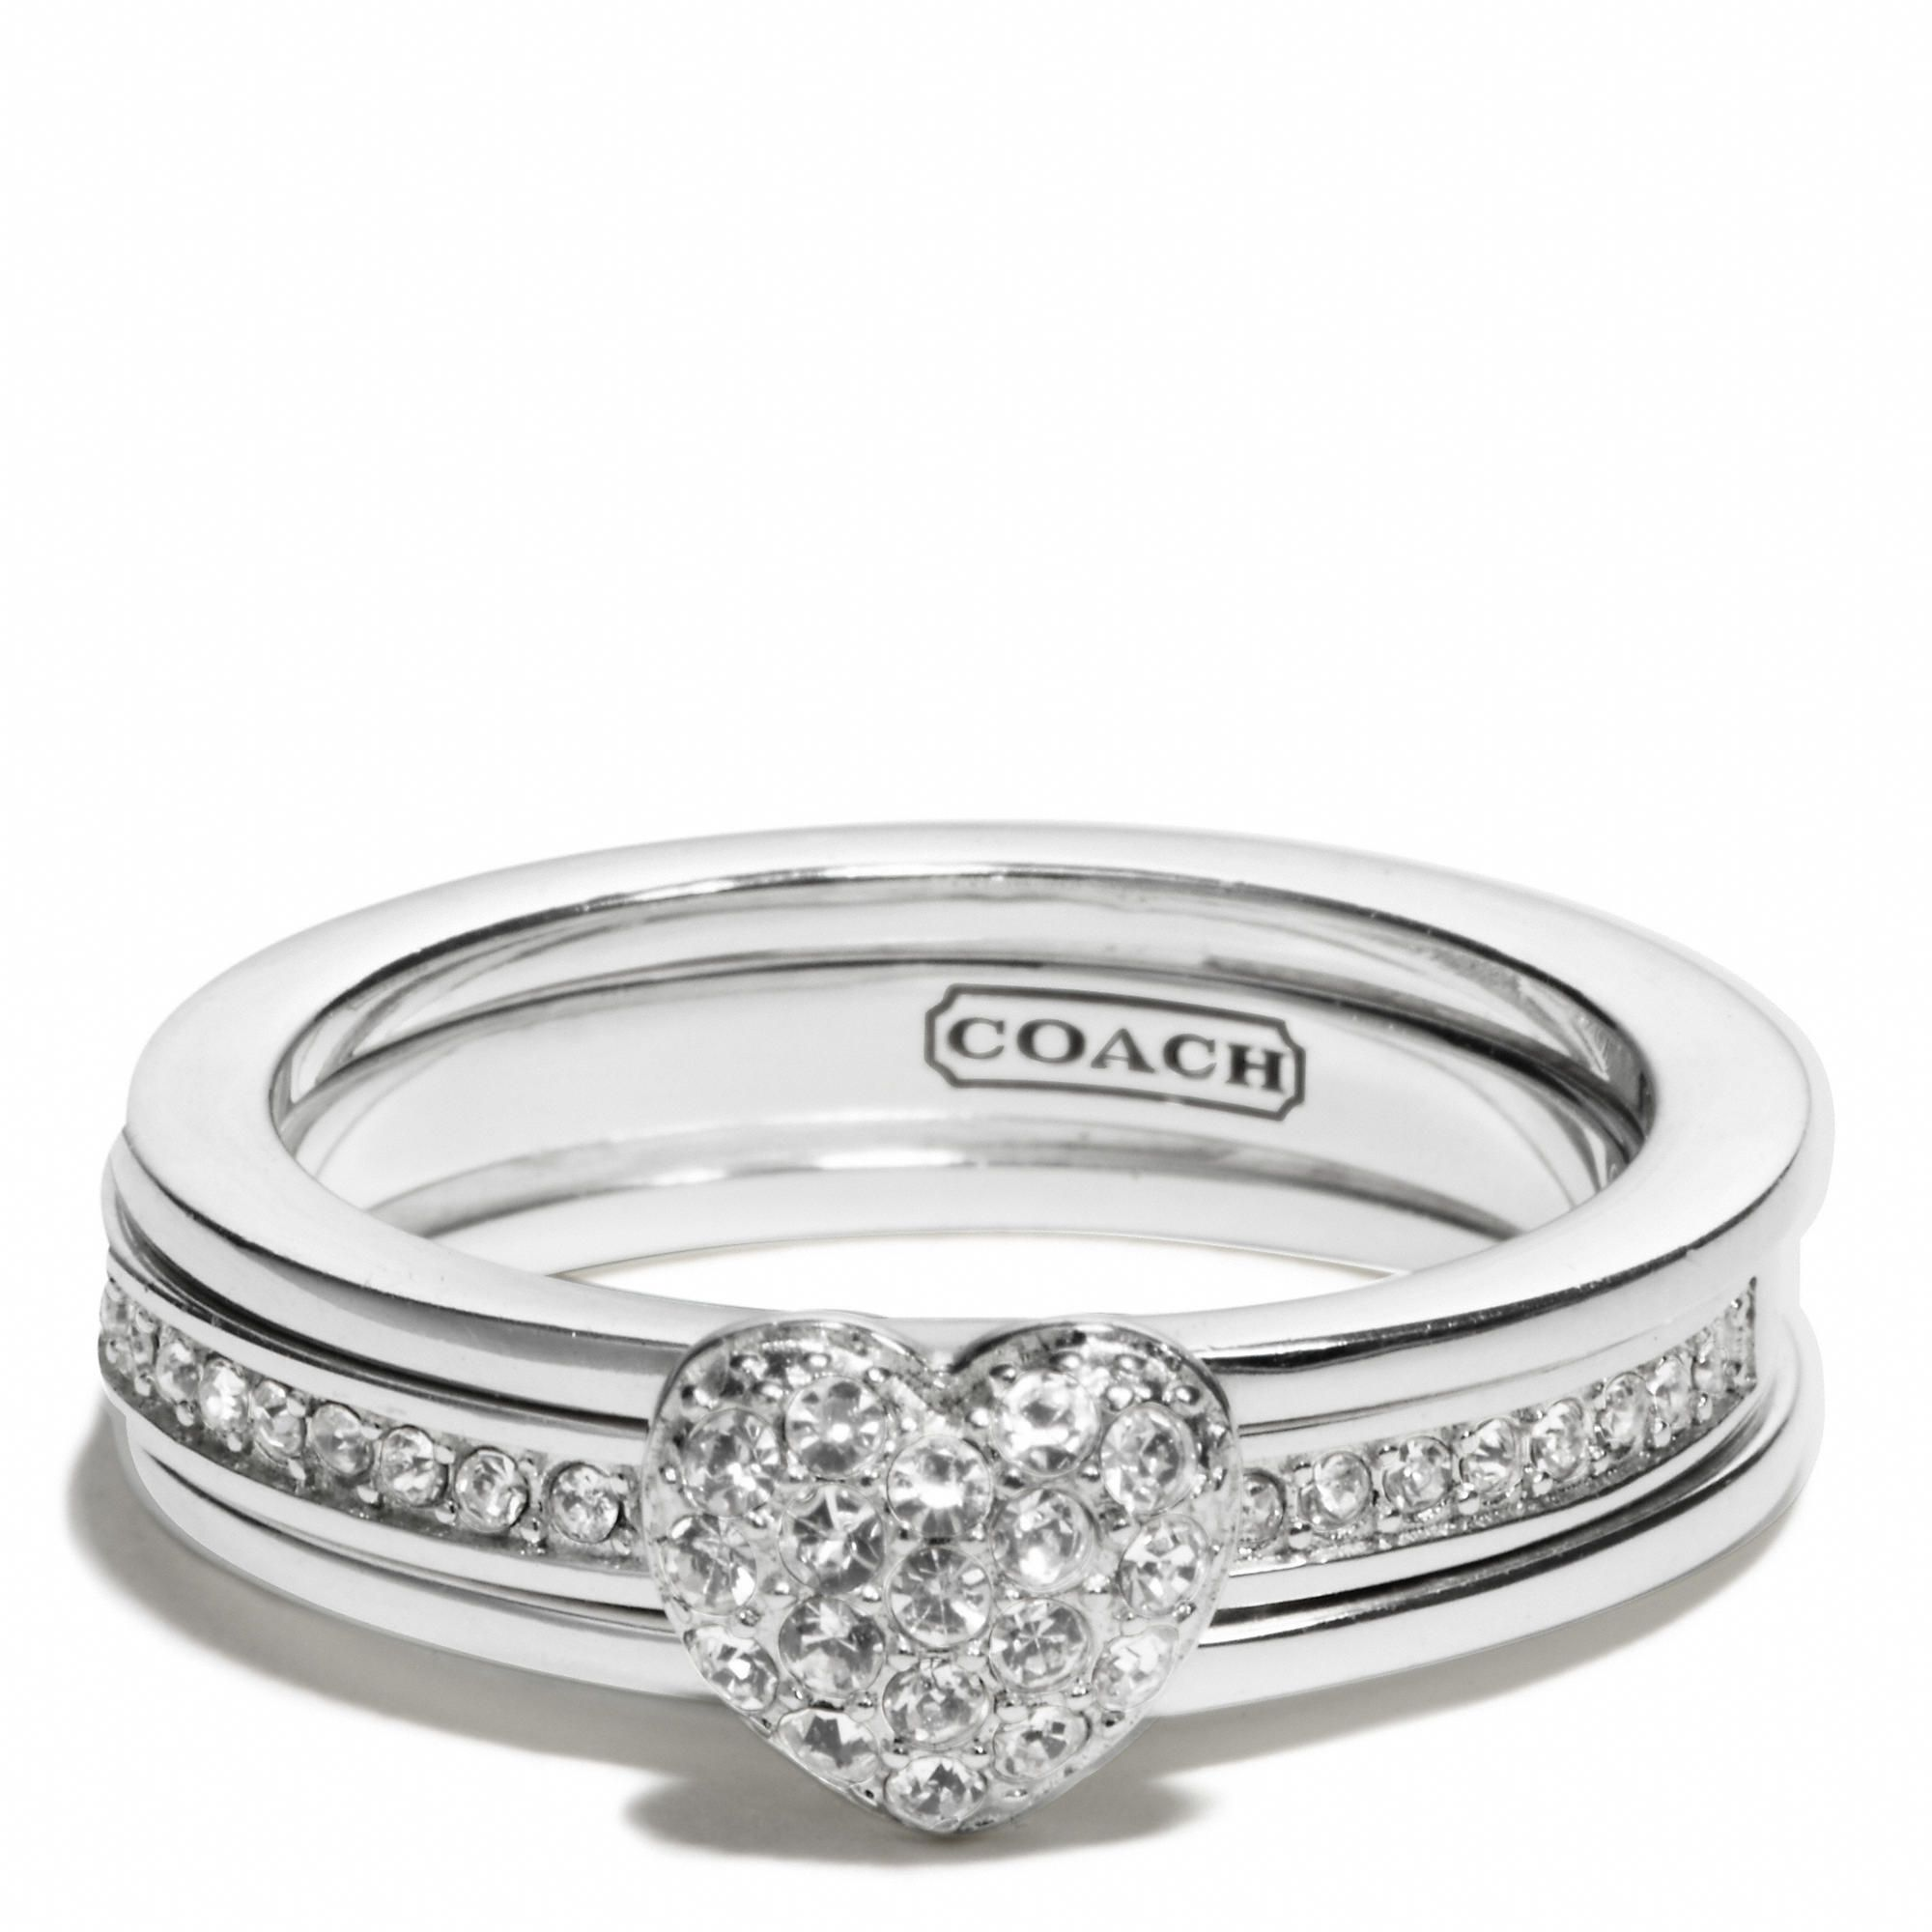 Pave heart convertible ring love Jewerly Pinterest Convertible